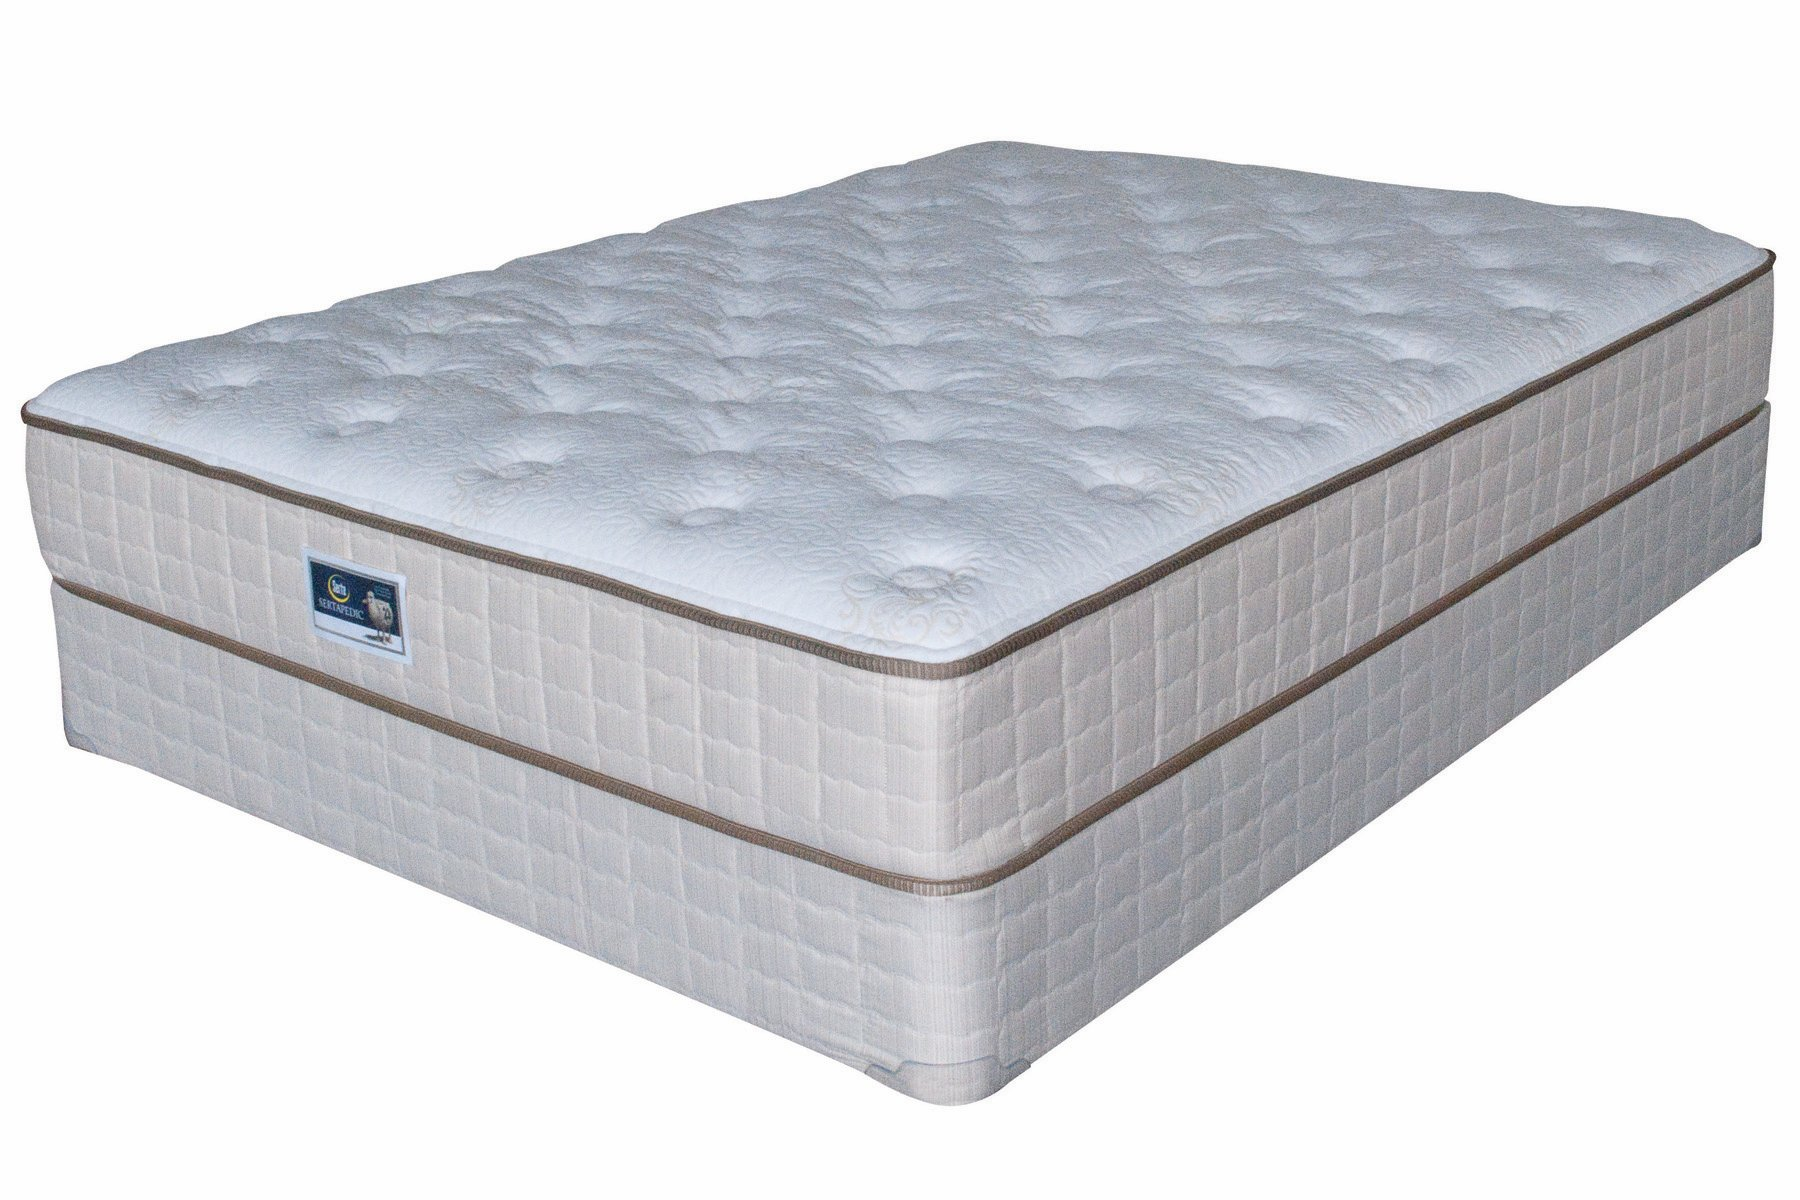 Sertapedic Grandbury Plush Mattress Reviews GoodBed